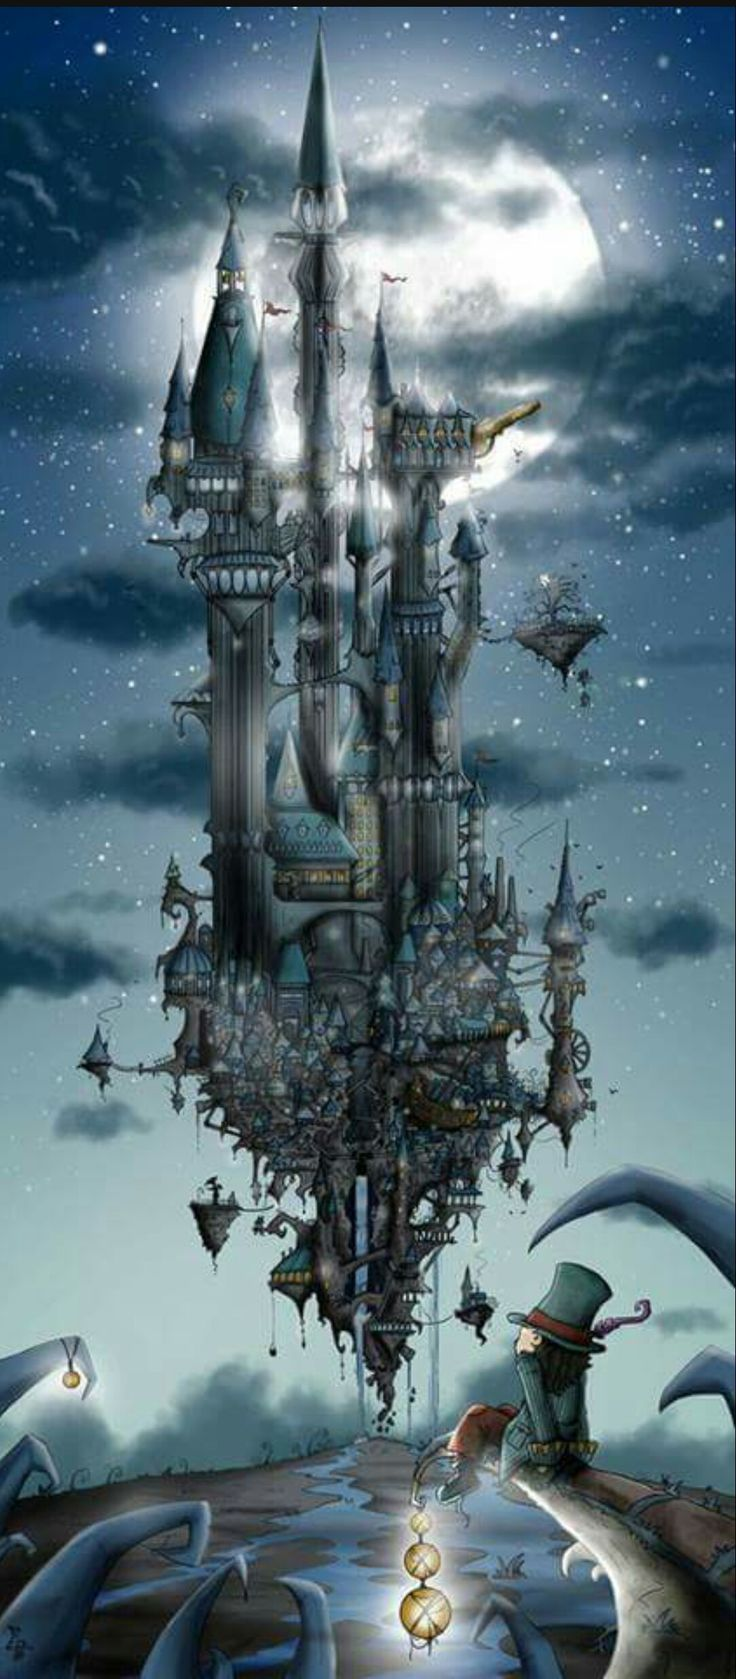 A truly whimsical and wonderful example of floating #castles. I think this is becoming it's own genre. Reminds me of Brian Froud's work.  #fantasyart